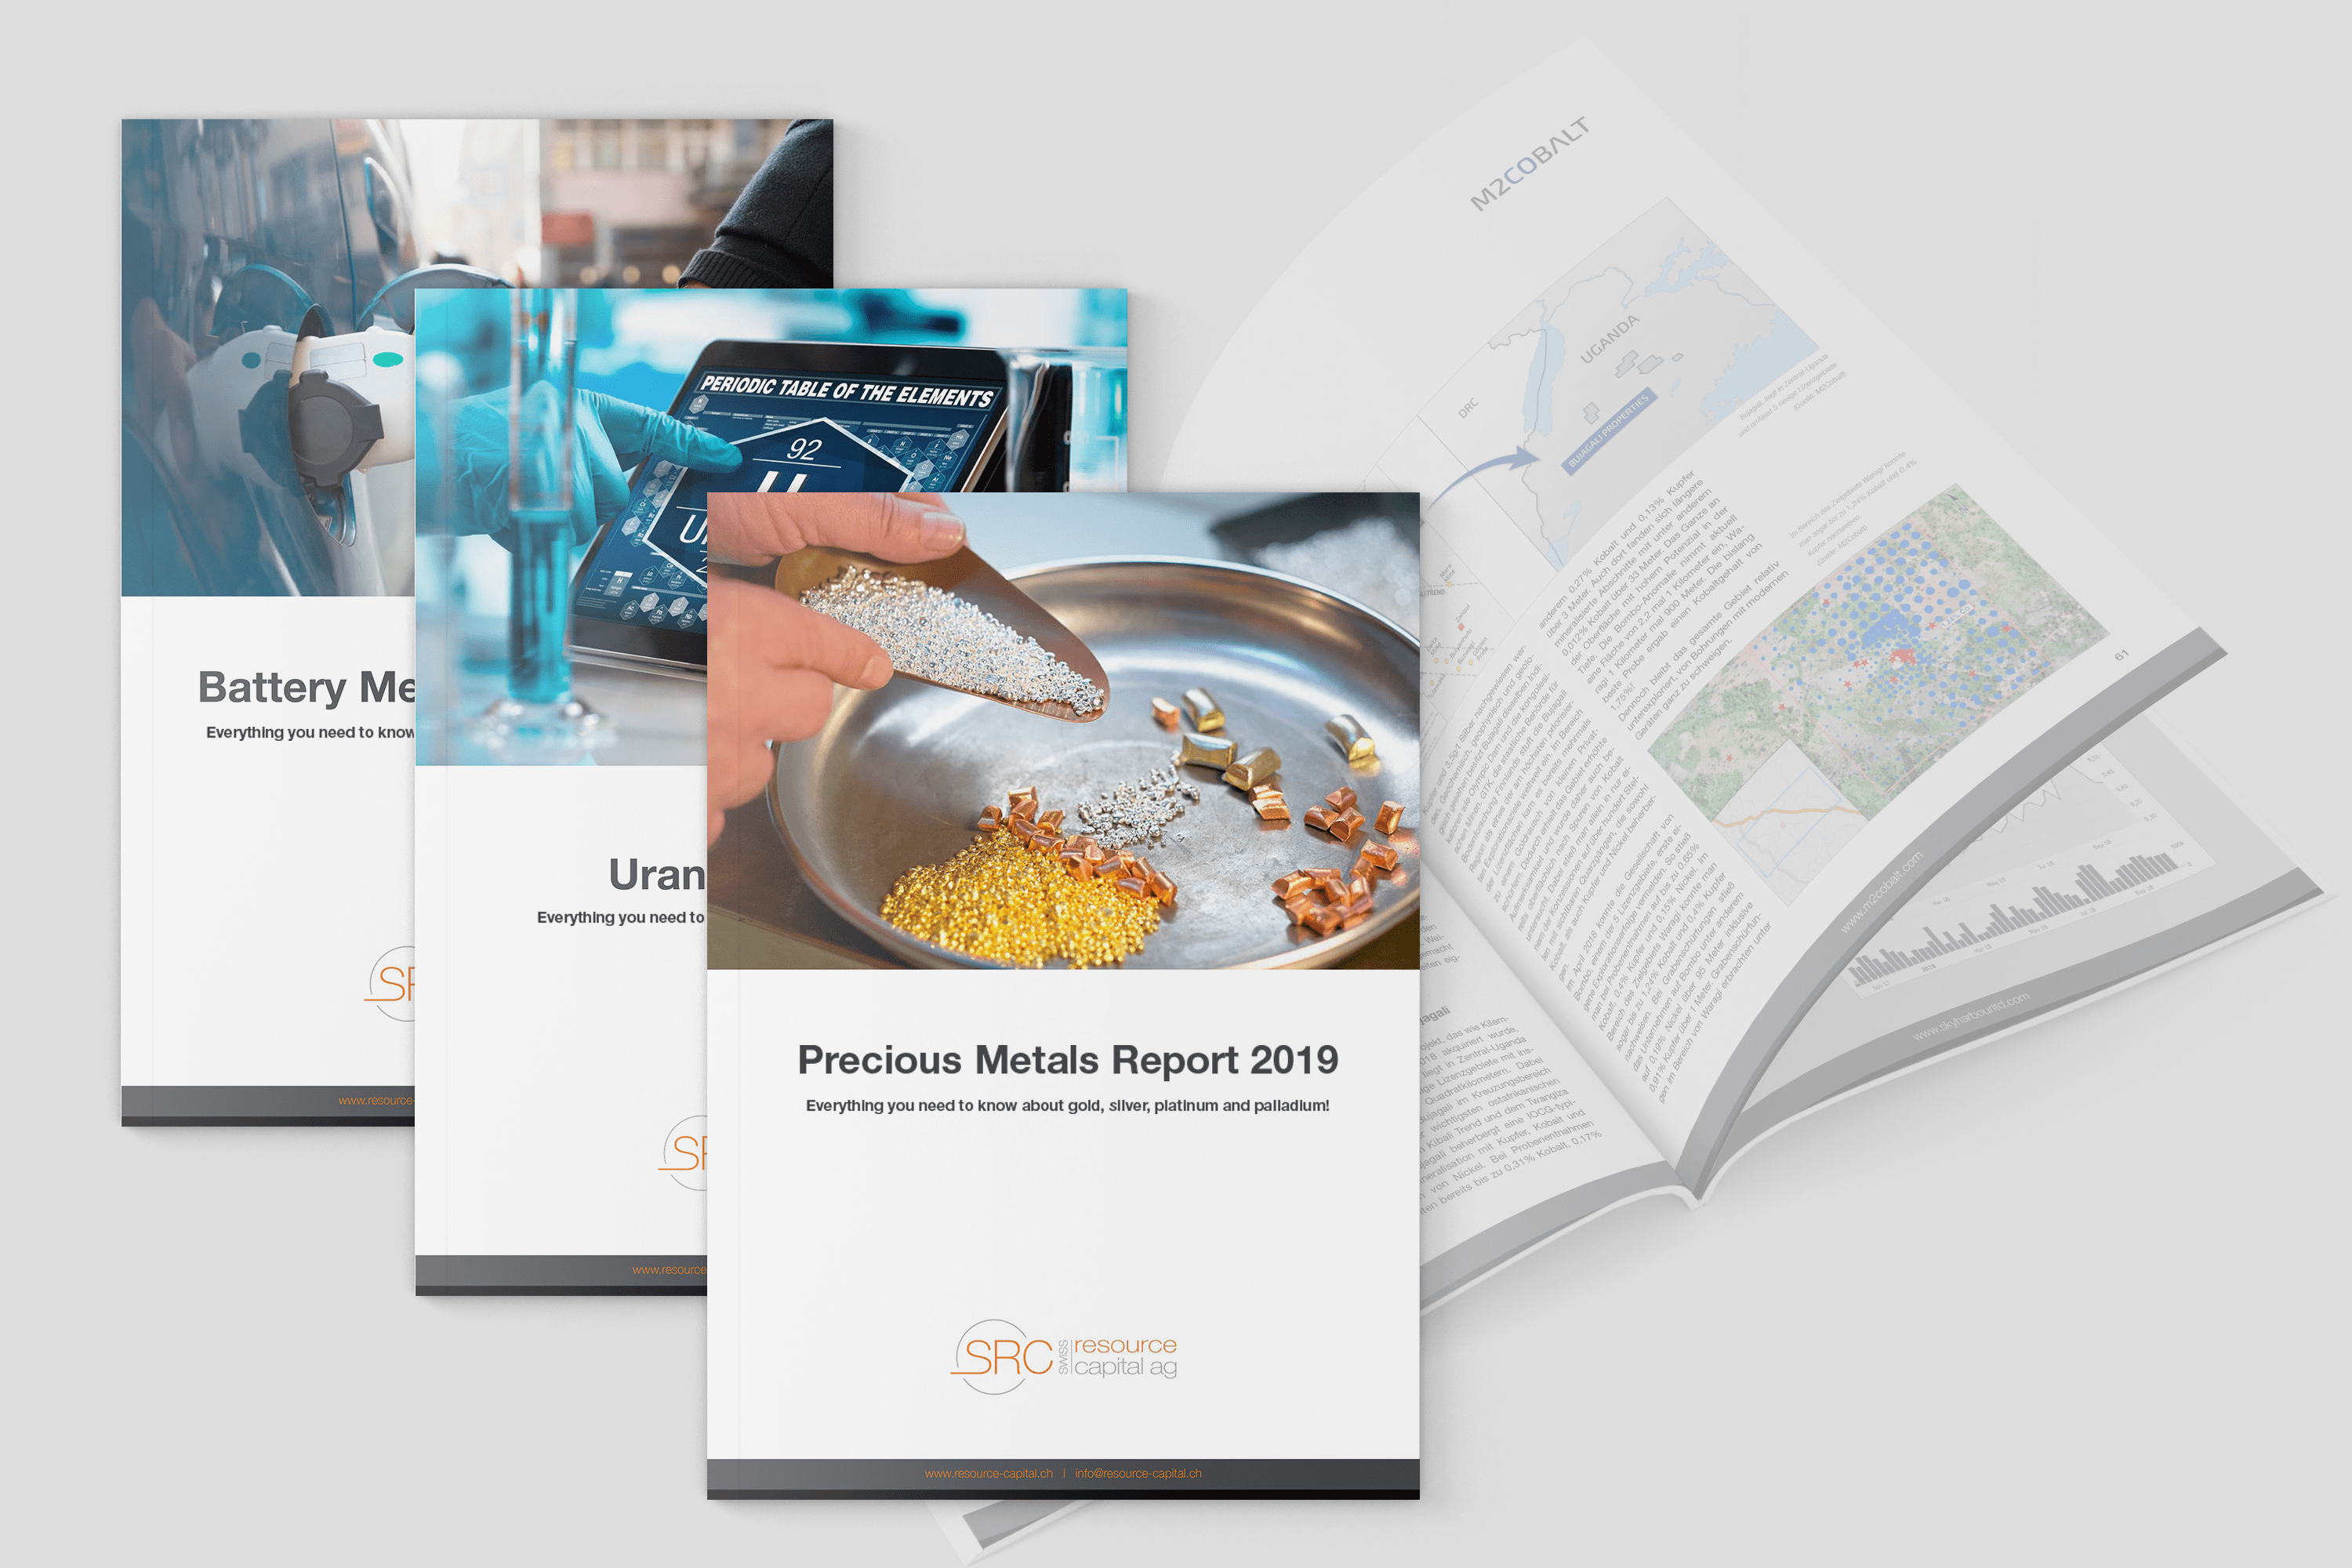 Swiss Resource Capital Special Reports 2019: New and Relevant Information for Download